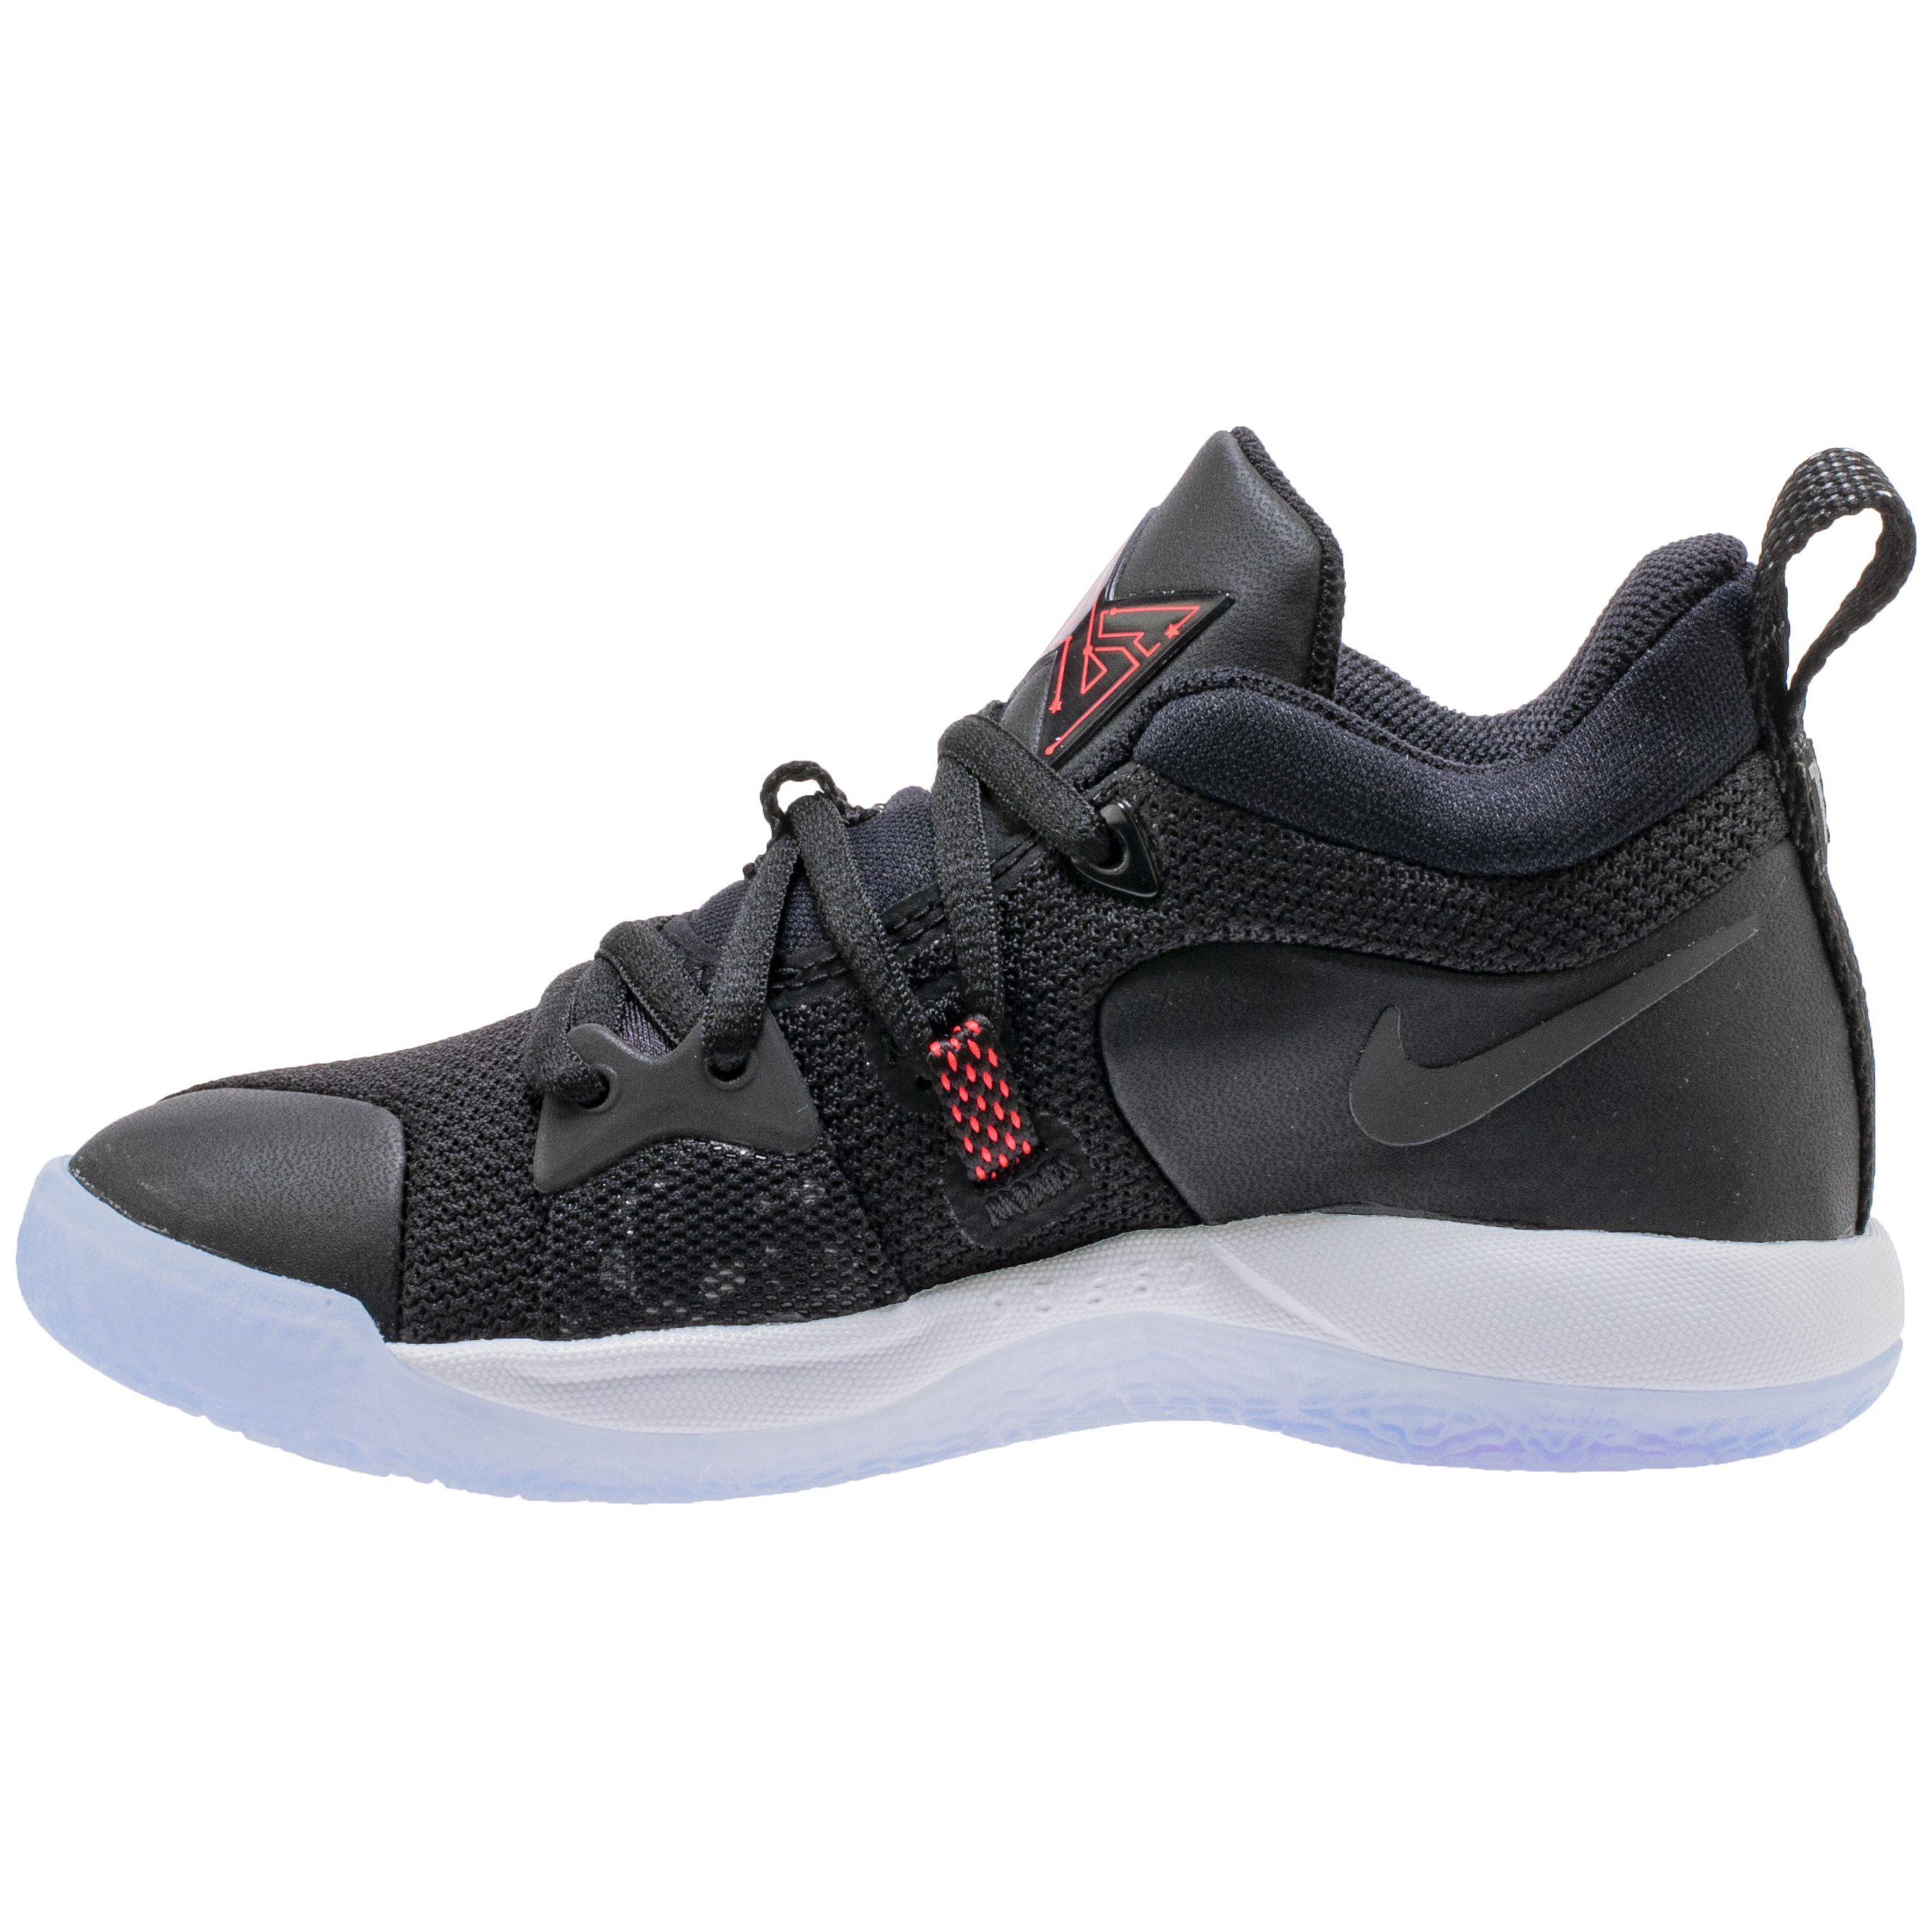 A New Nike PG 2 'Black/White/Red' with